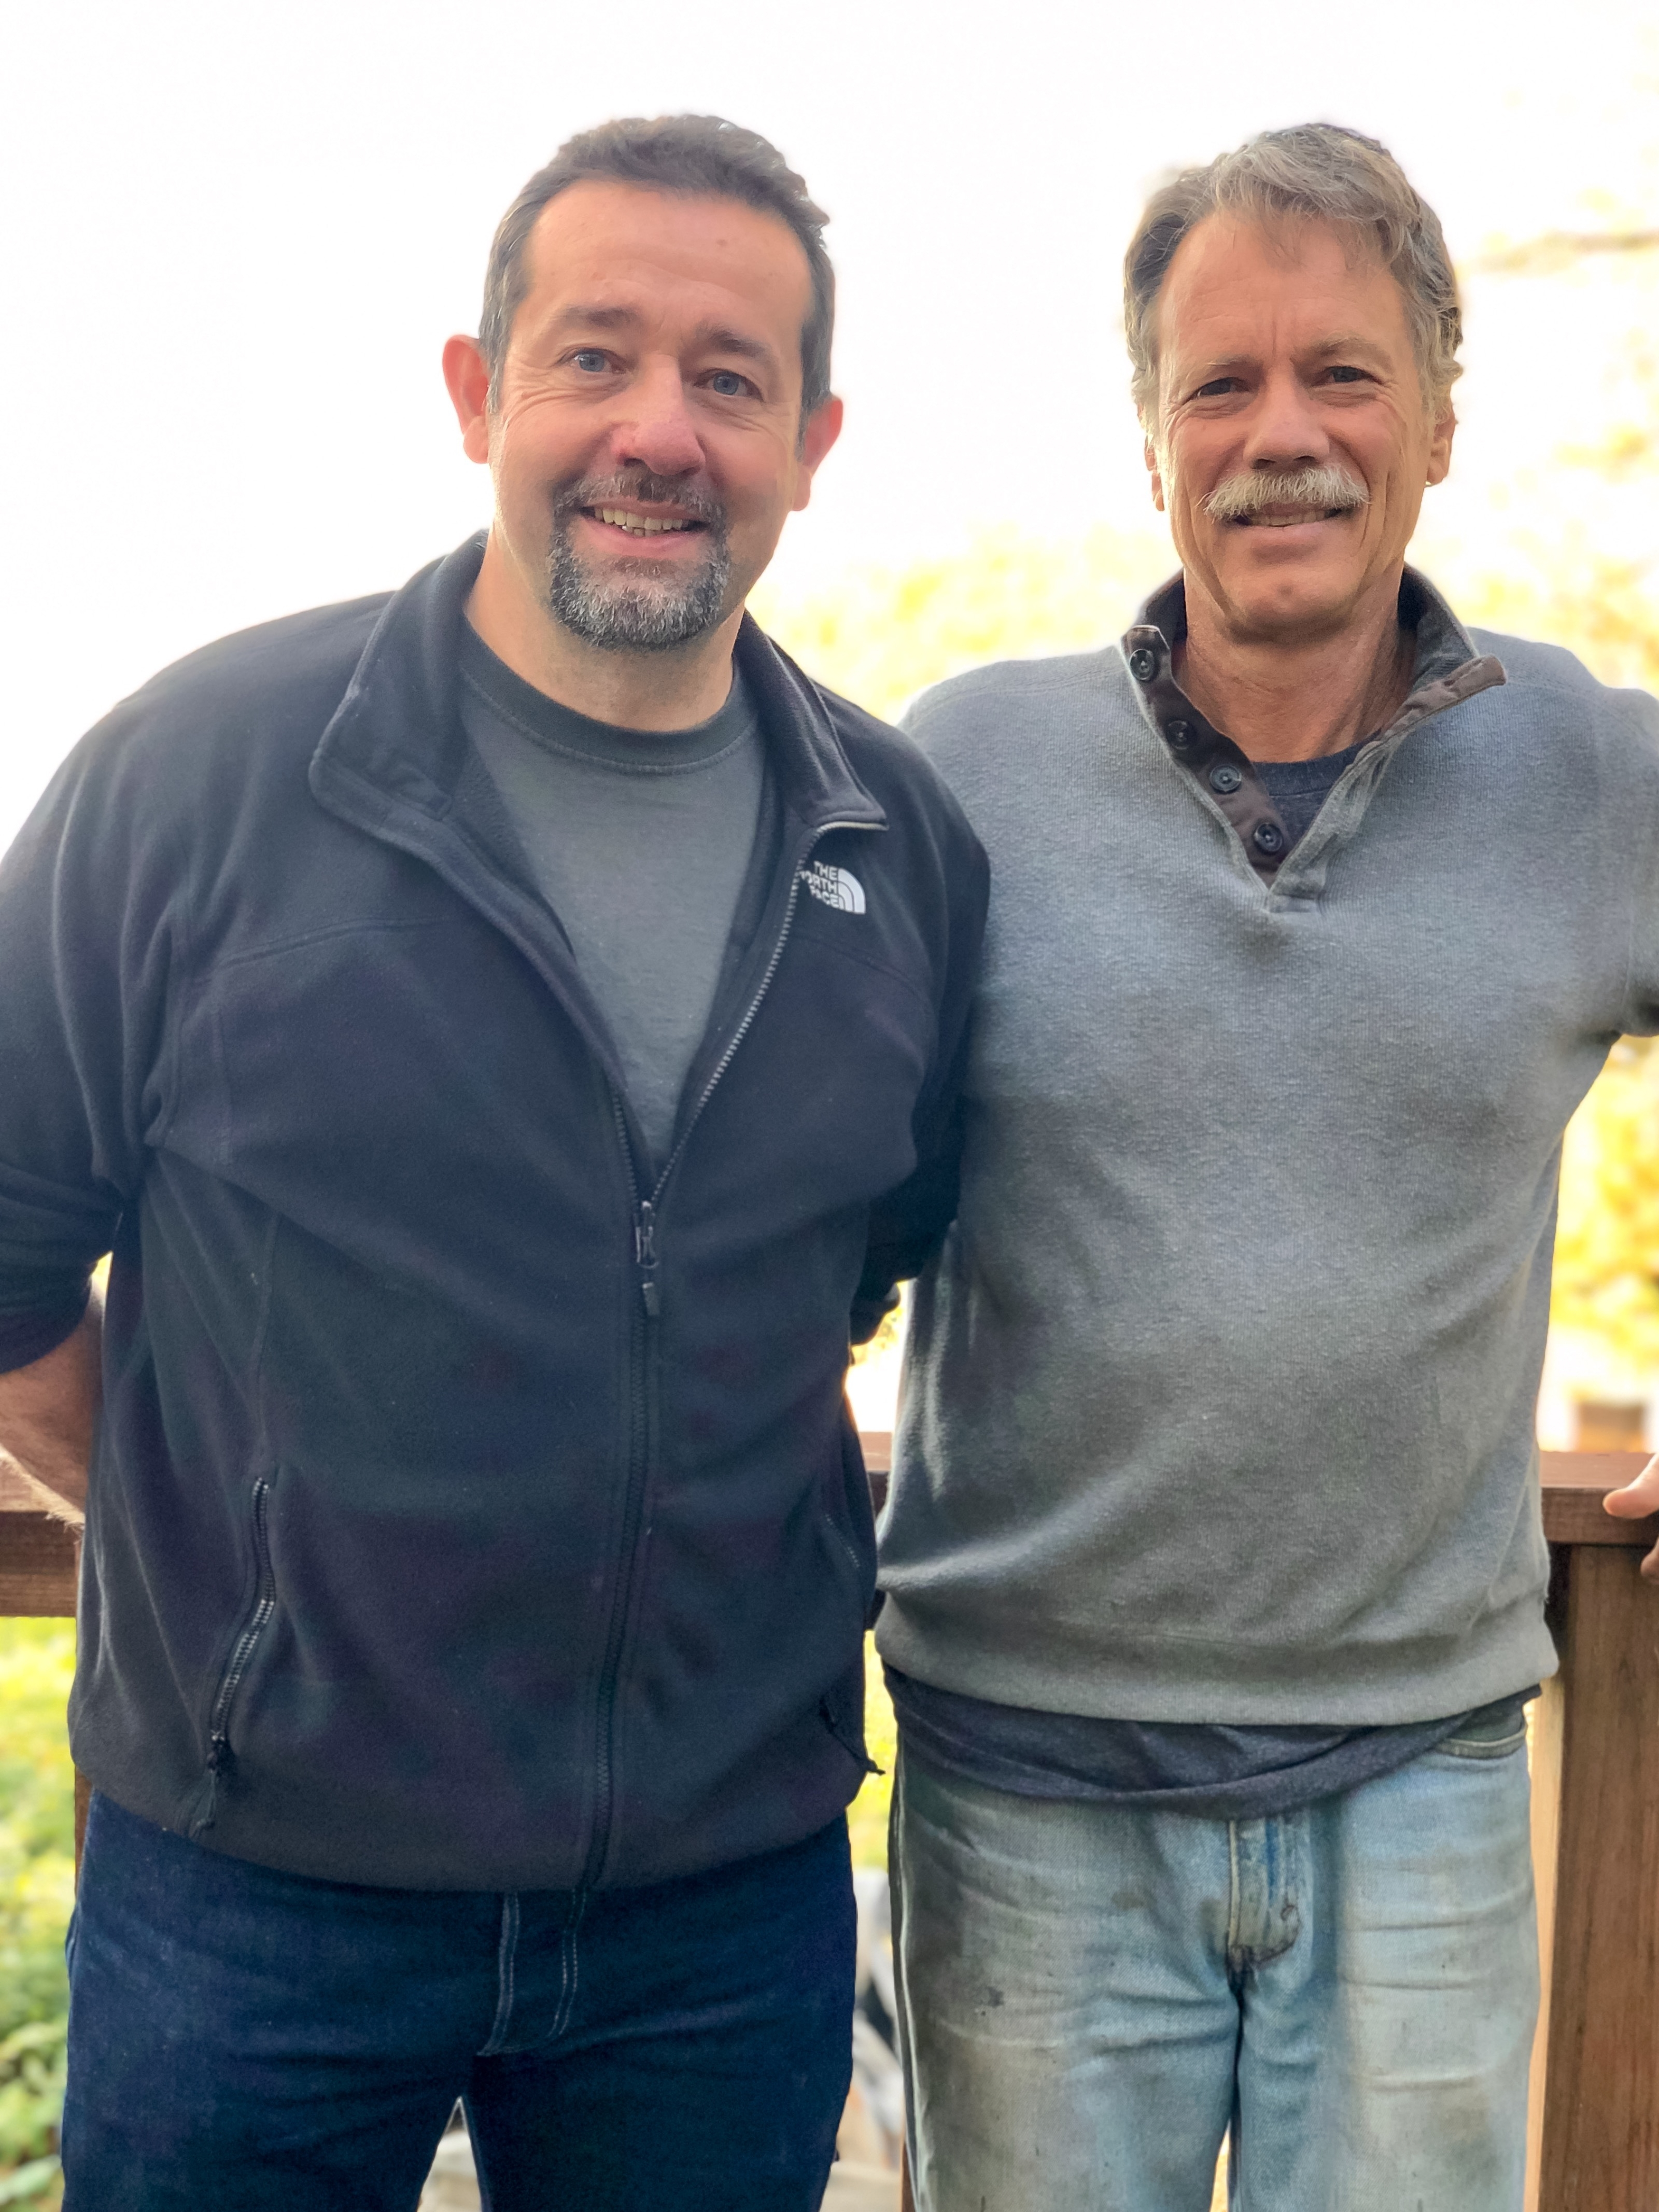 Steve with Randy Oliver